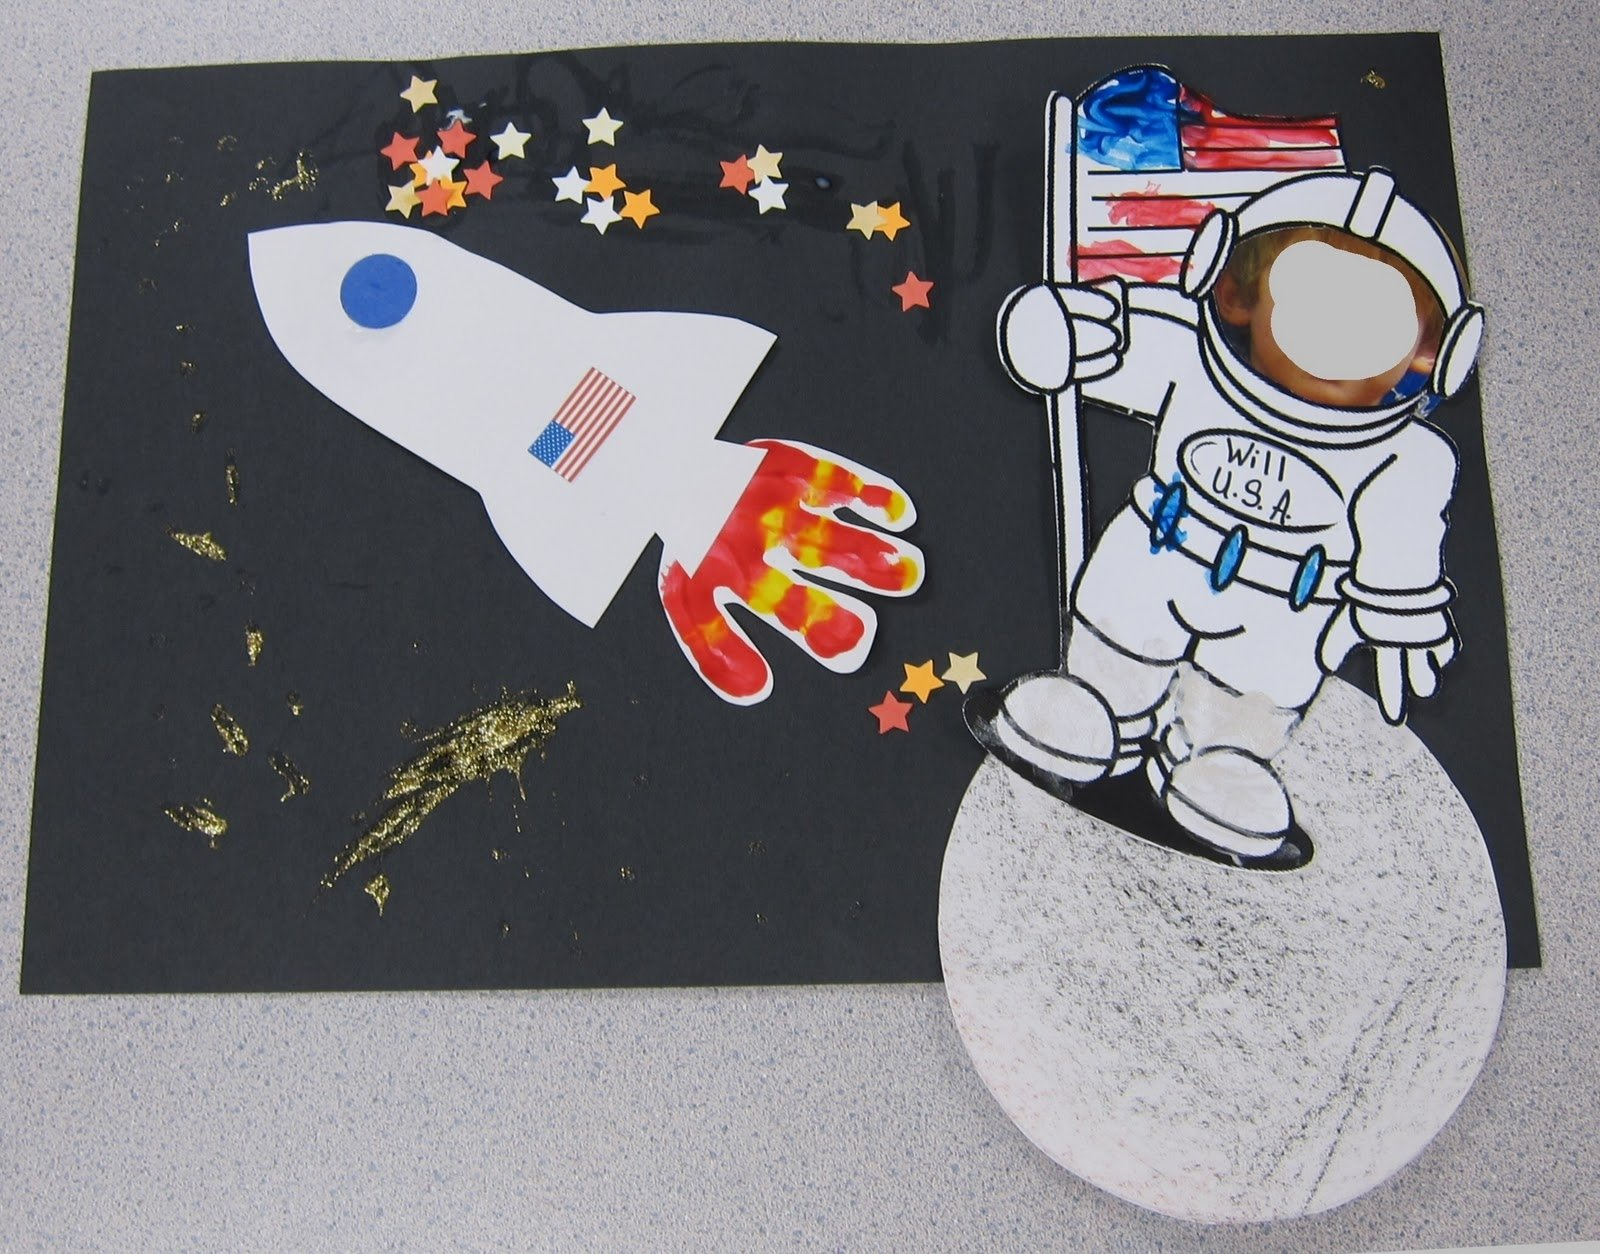 10 Fabulous A Rocket To The Moon Your Best Idea mrs karens preschool ideas lets fly to the moon or jupiter 1 2021